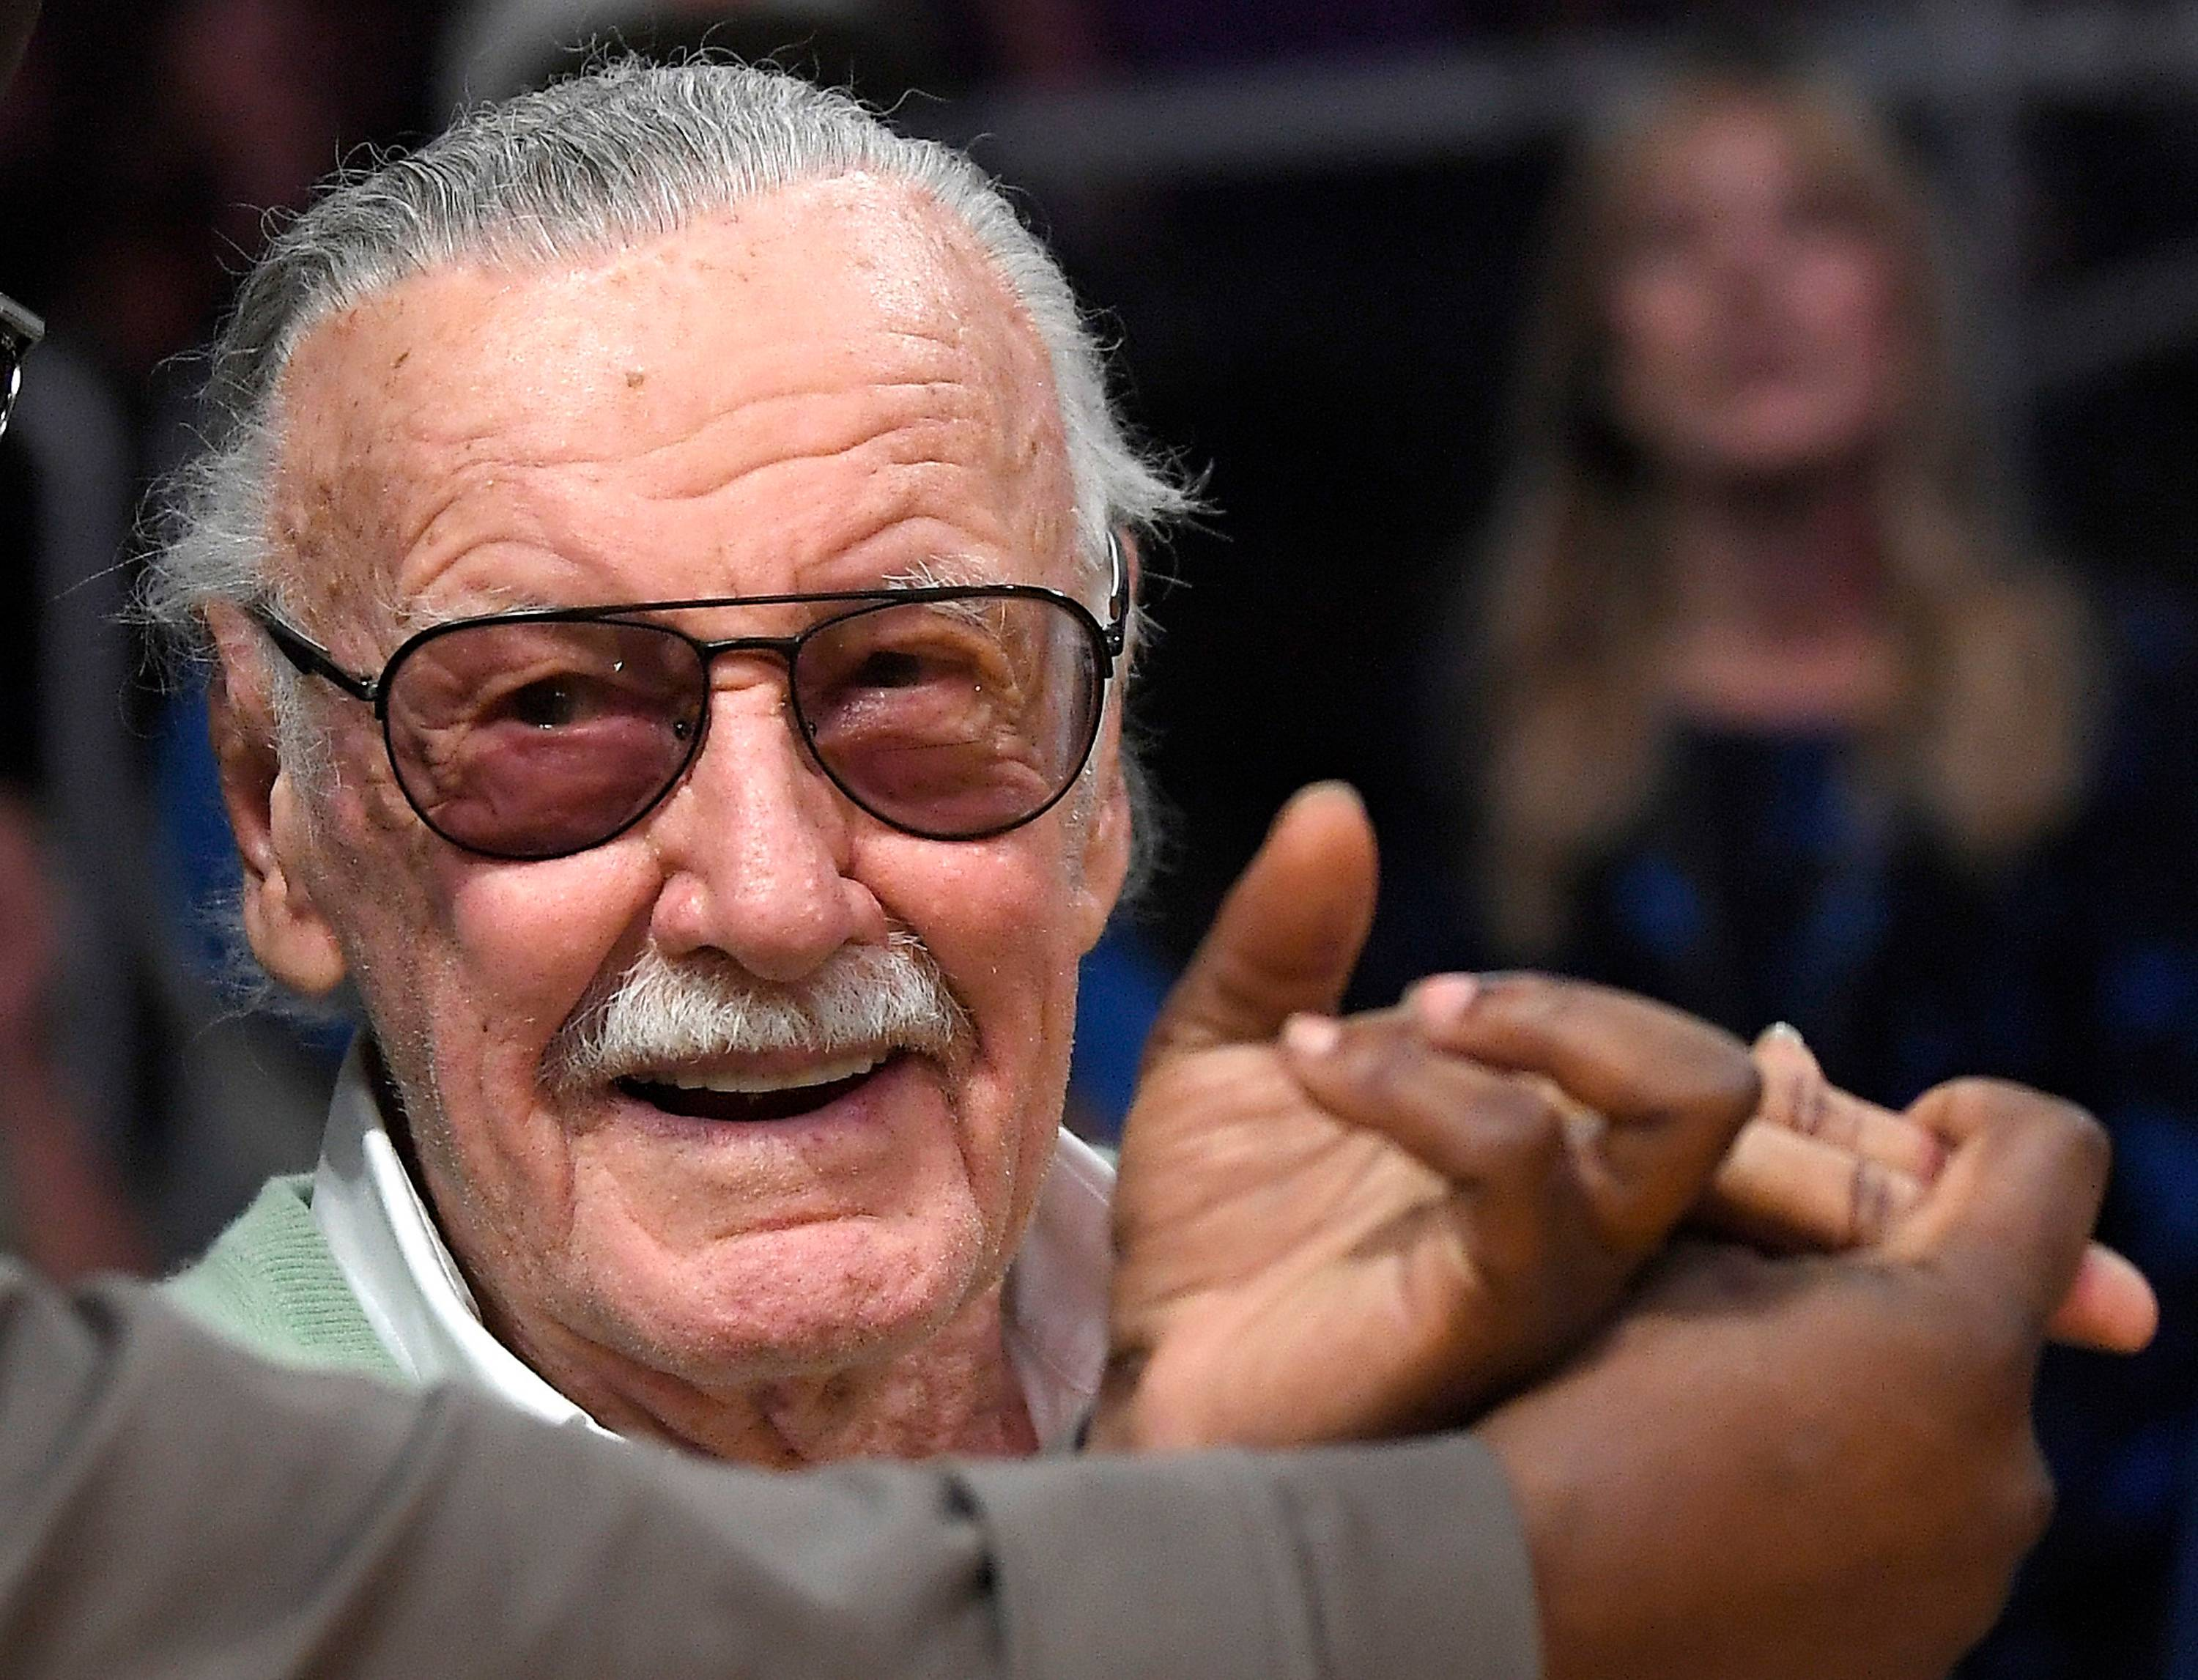 Famed comic book creator Stan Lee has died at age 95, a family attorney his saying.